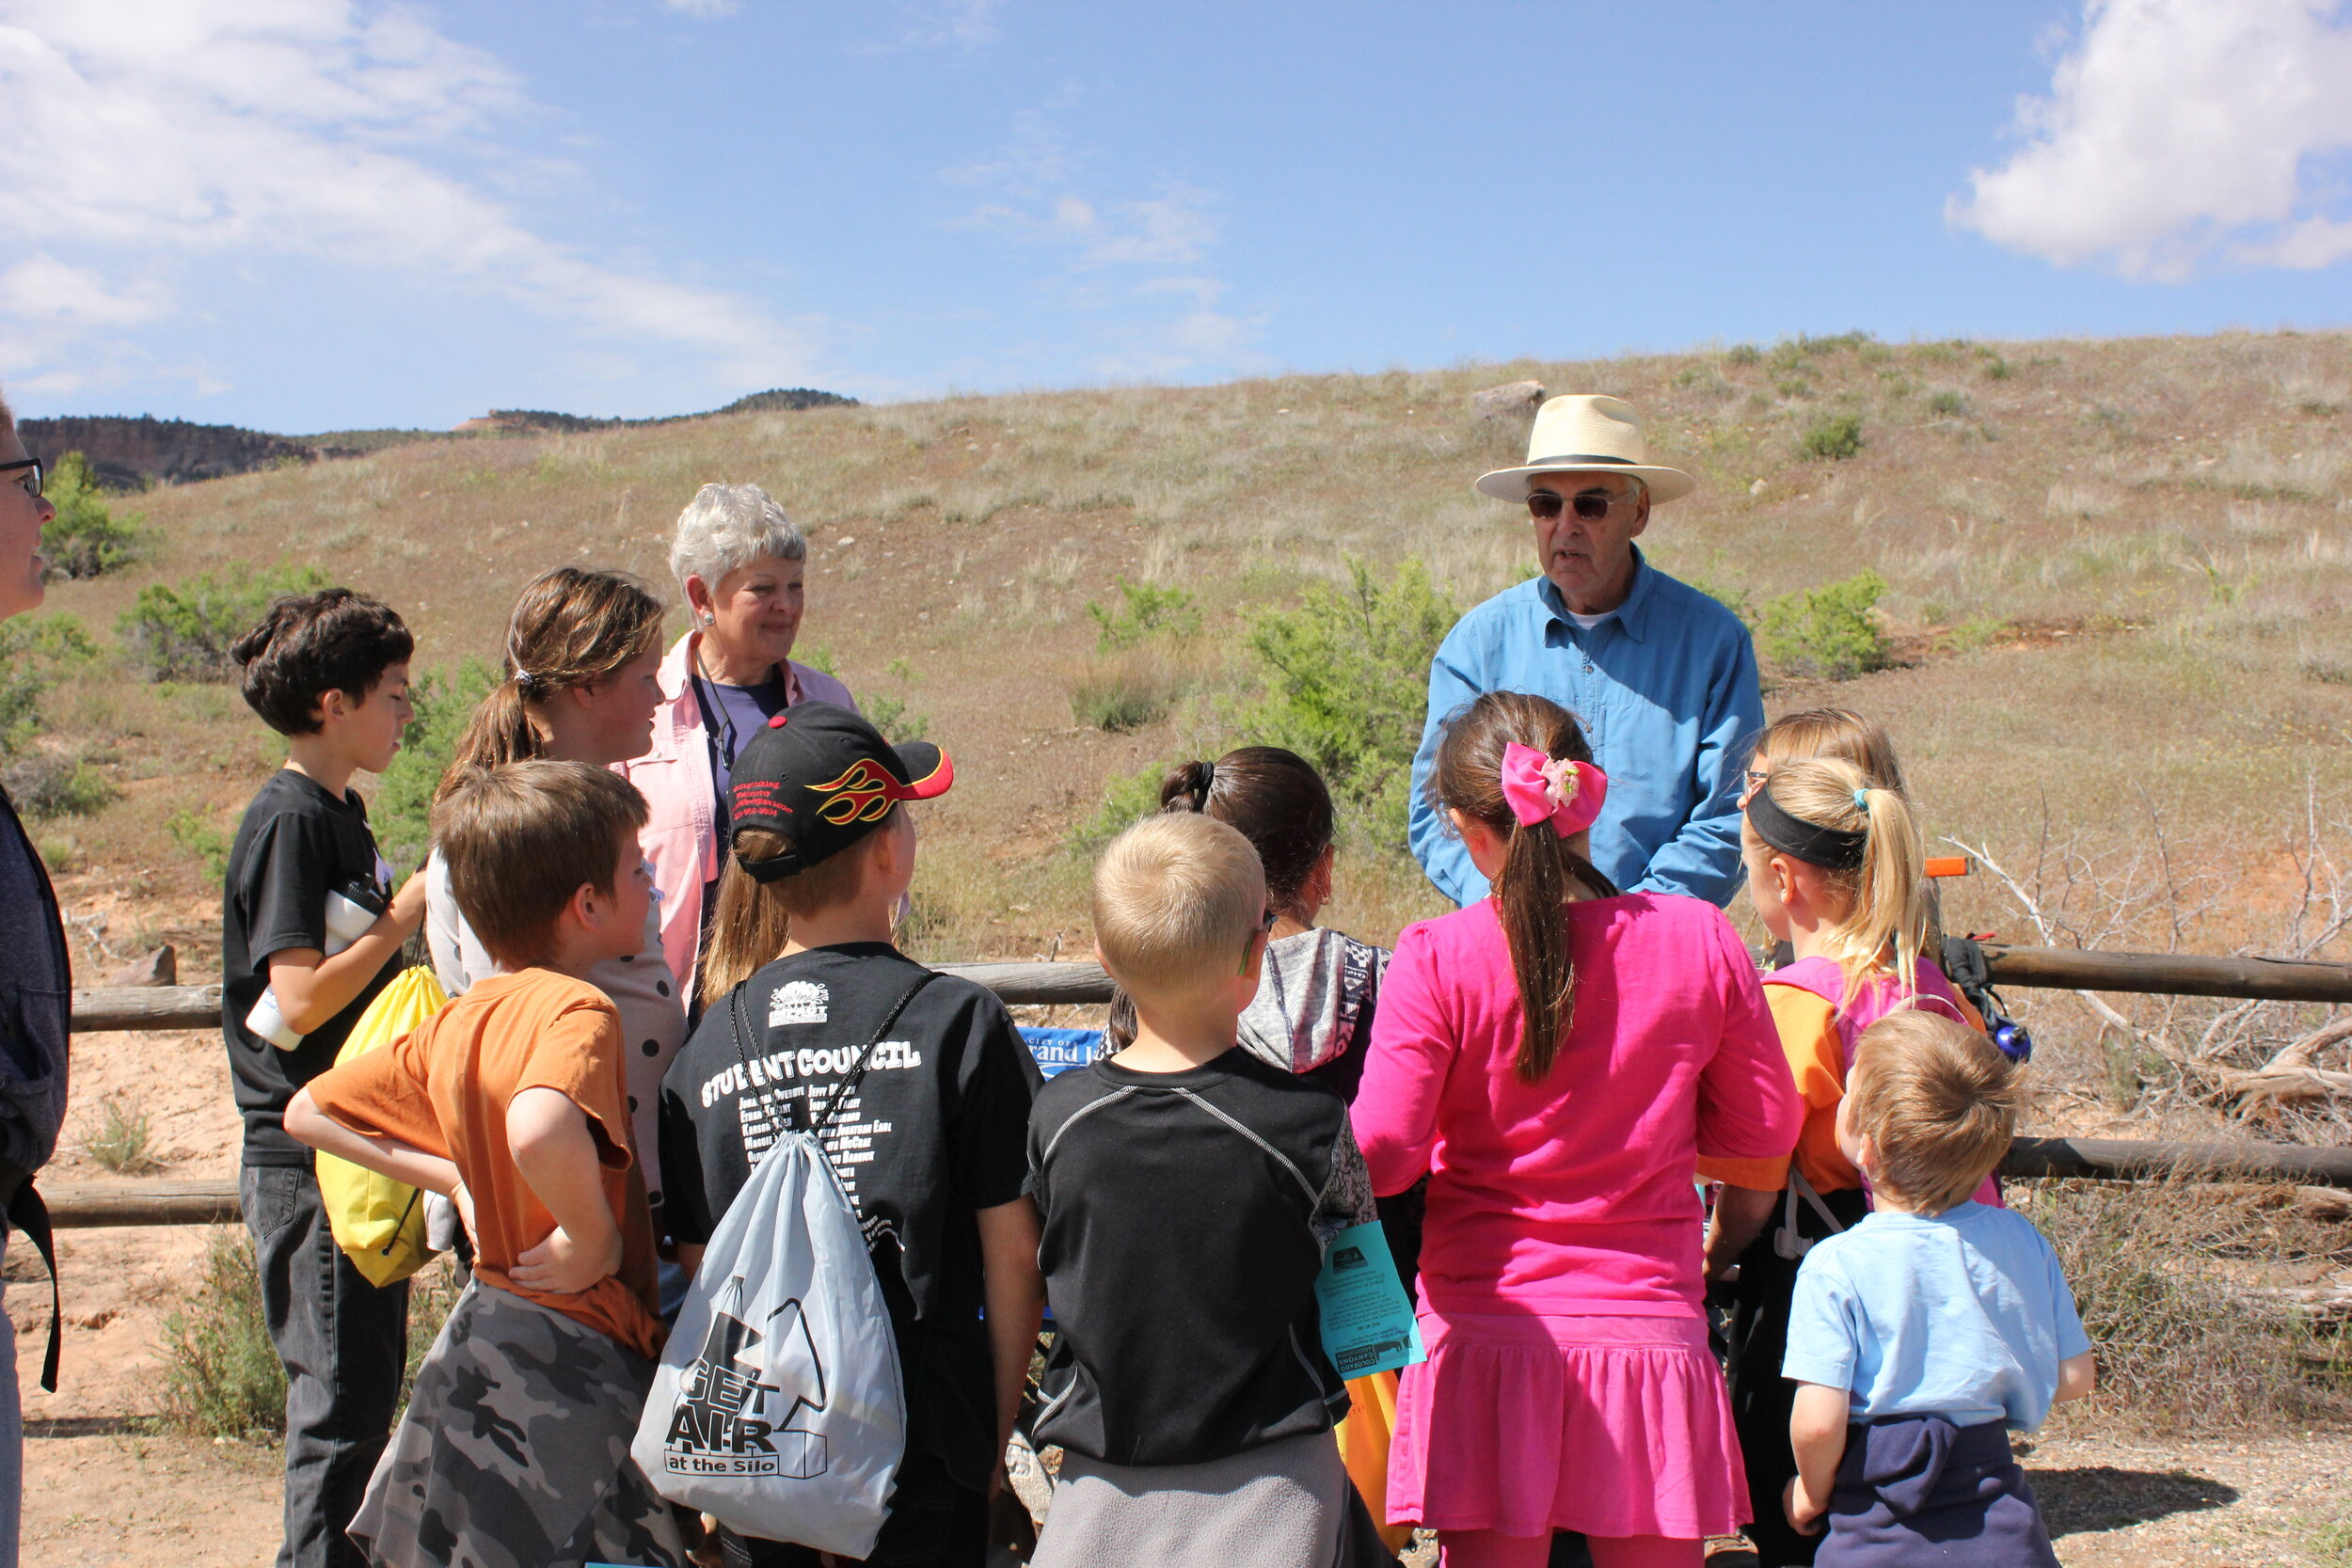 PHOTO COURTESY ROB GAY  CCA volunteers Katie Steele and Owen O'Fallon teach a group of third-graders at Nature Knowledge Days in McInnis Canyons National Conservation Area